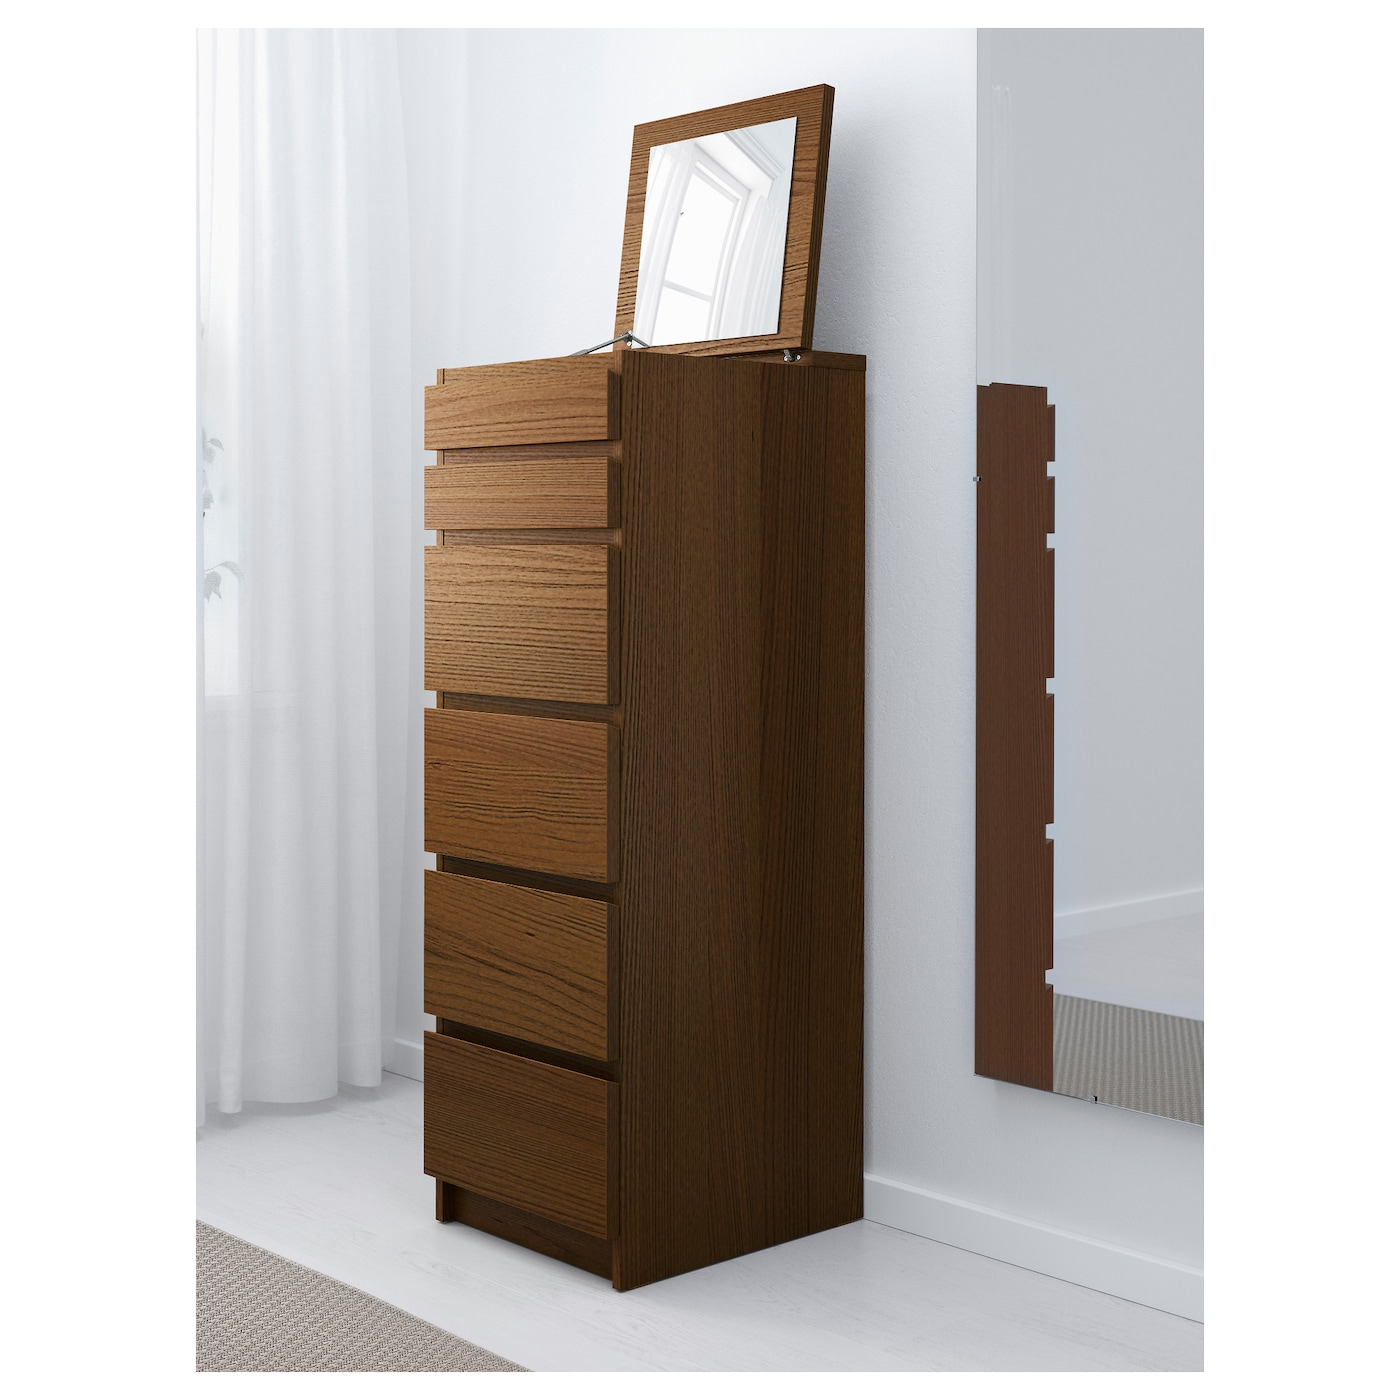 malm chest of 6 drawers brown stained ash veneer mirror glass 40 x 123 cm ikea. Black Bedroom Furniture Sets. Home Design Ideas